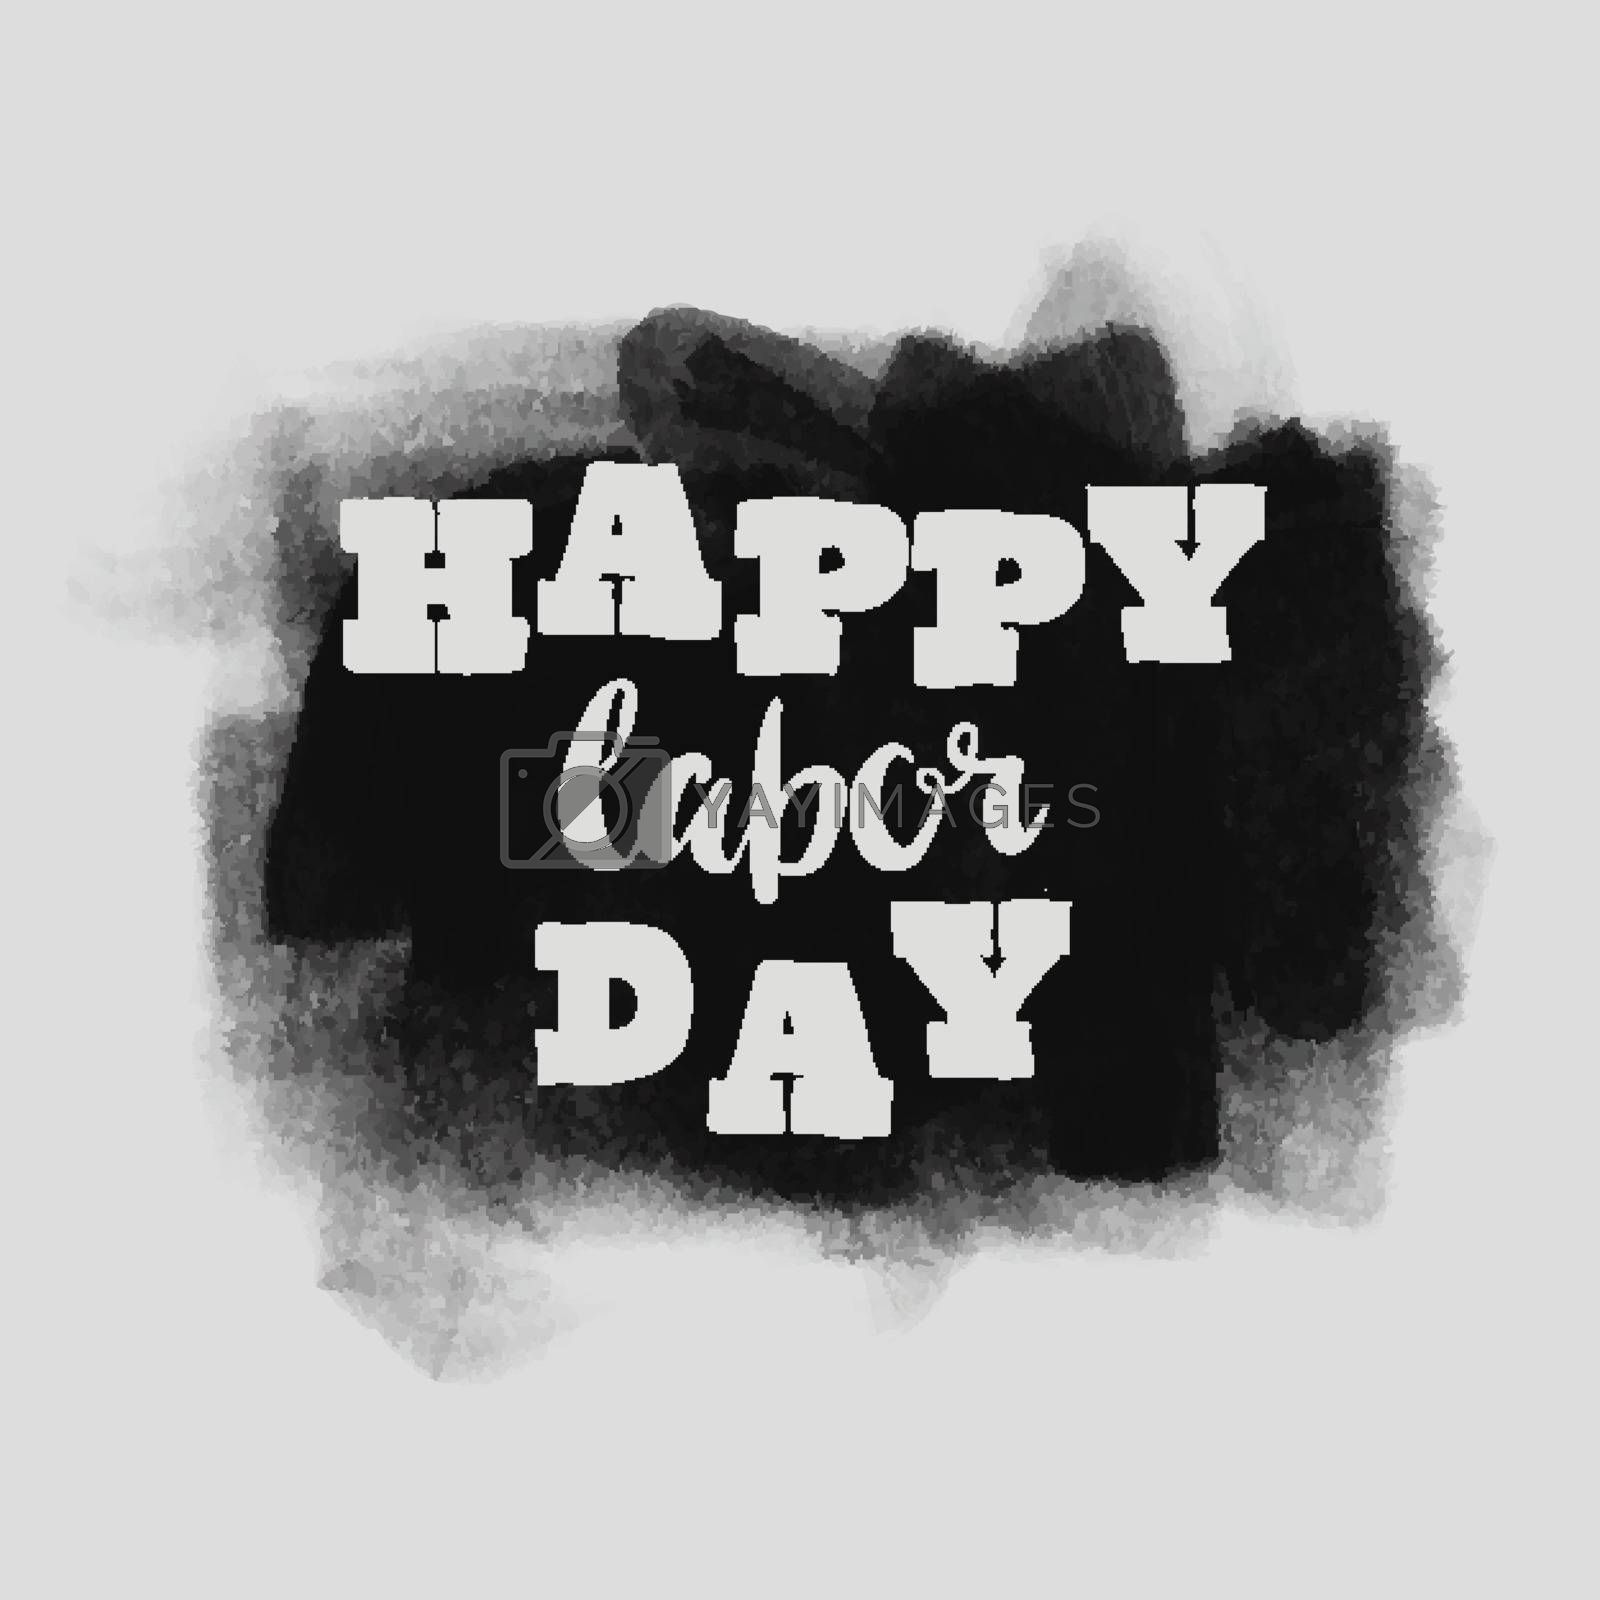 Happy Labor day typographic monochrome design. Usable as Labor day letter greeting cards, posters. Hand Lettering on grunge ink background. Black dirty decoration with text. Vector illustration.